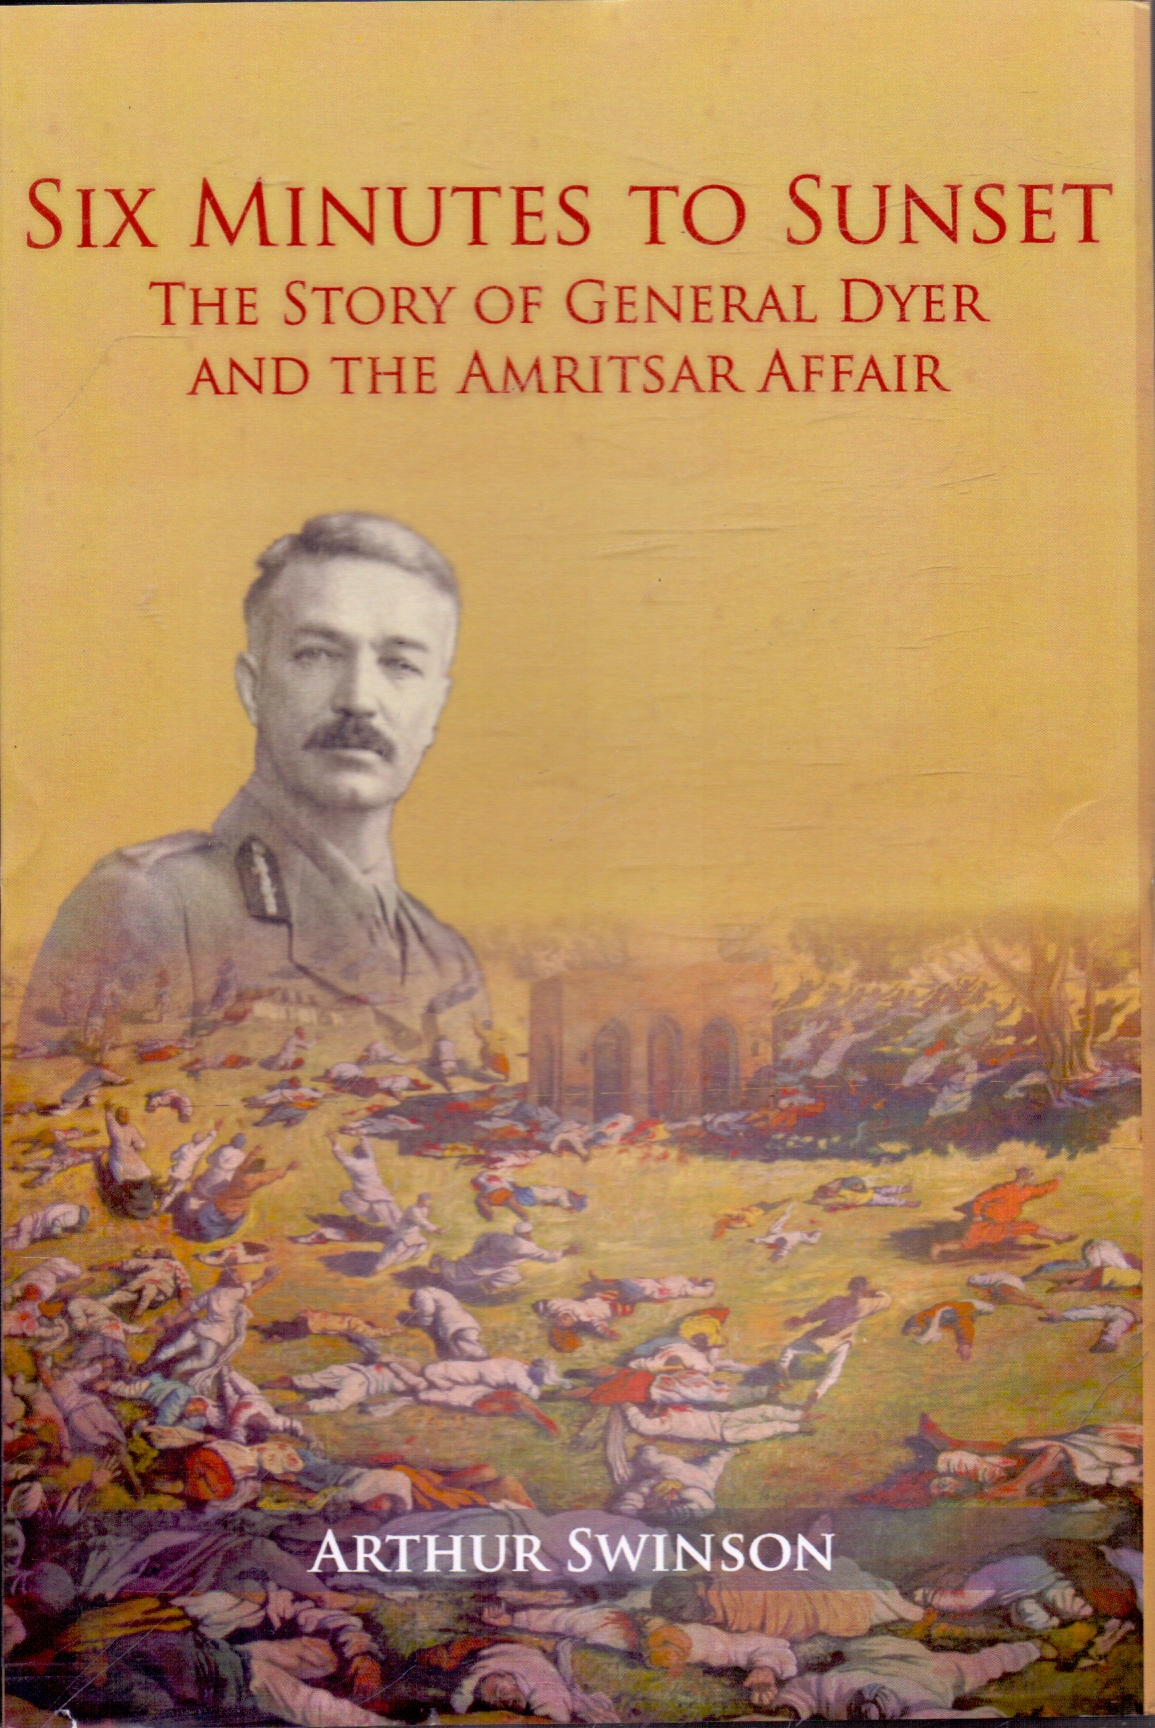 Six Minutes to Sunset The Story of General Dyer and the Amritsar Affair